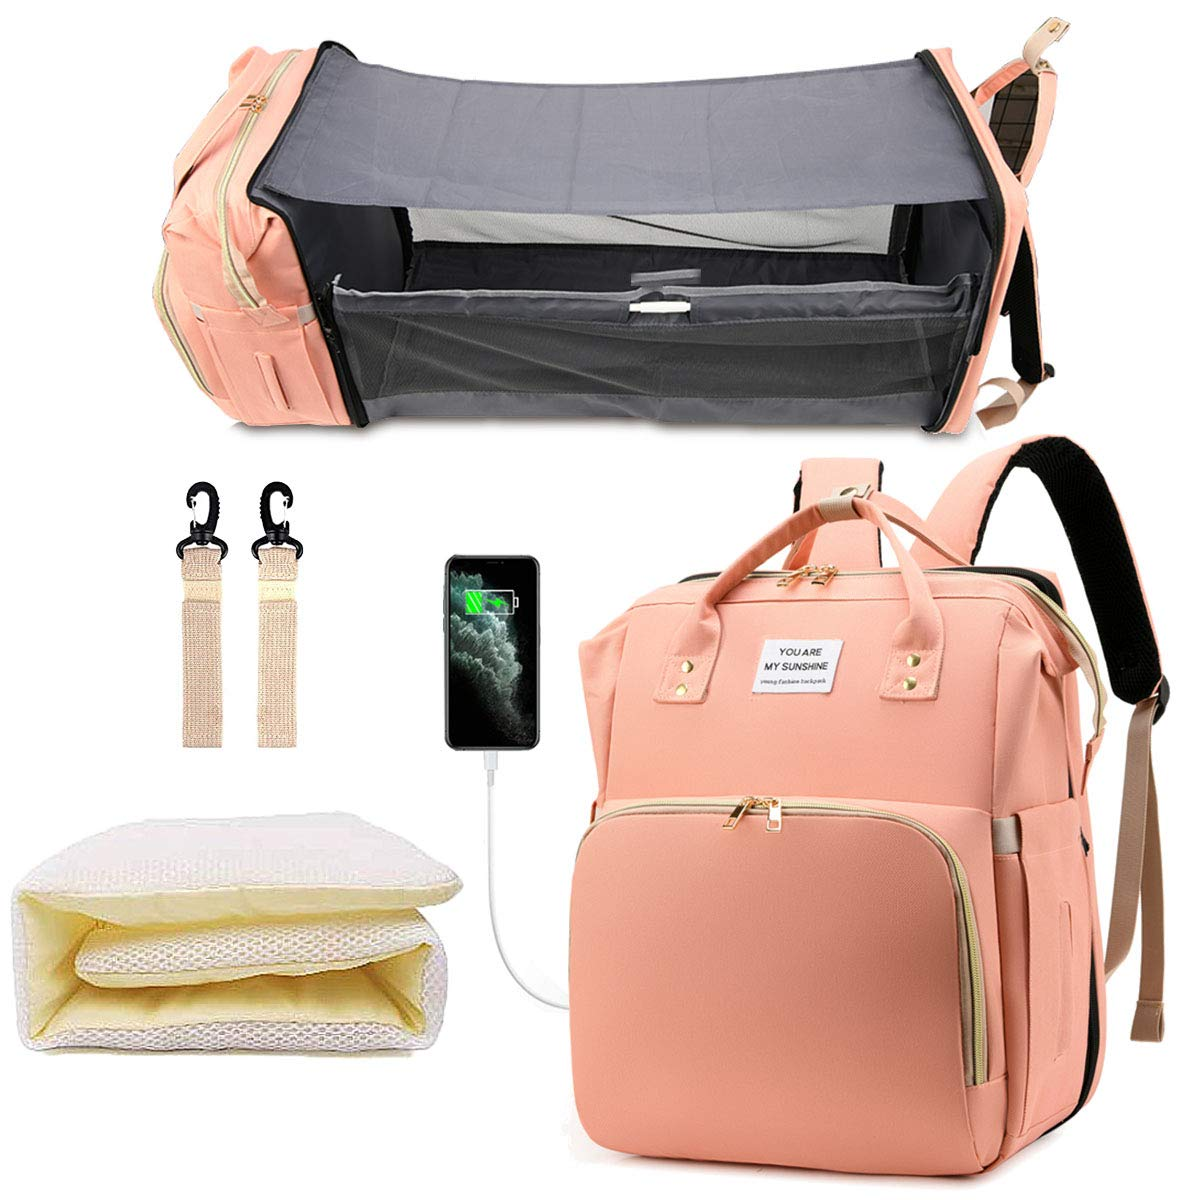 Diaper Bag Backpack, Portable Sleeping Mummy Bag, Foldable Baby Bed Diaper Bags, Multifunction 3 in 1 Travel Back Pack Maternity Baby Changing Bags, Waterproof and Stylish, Pink